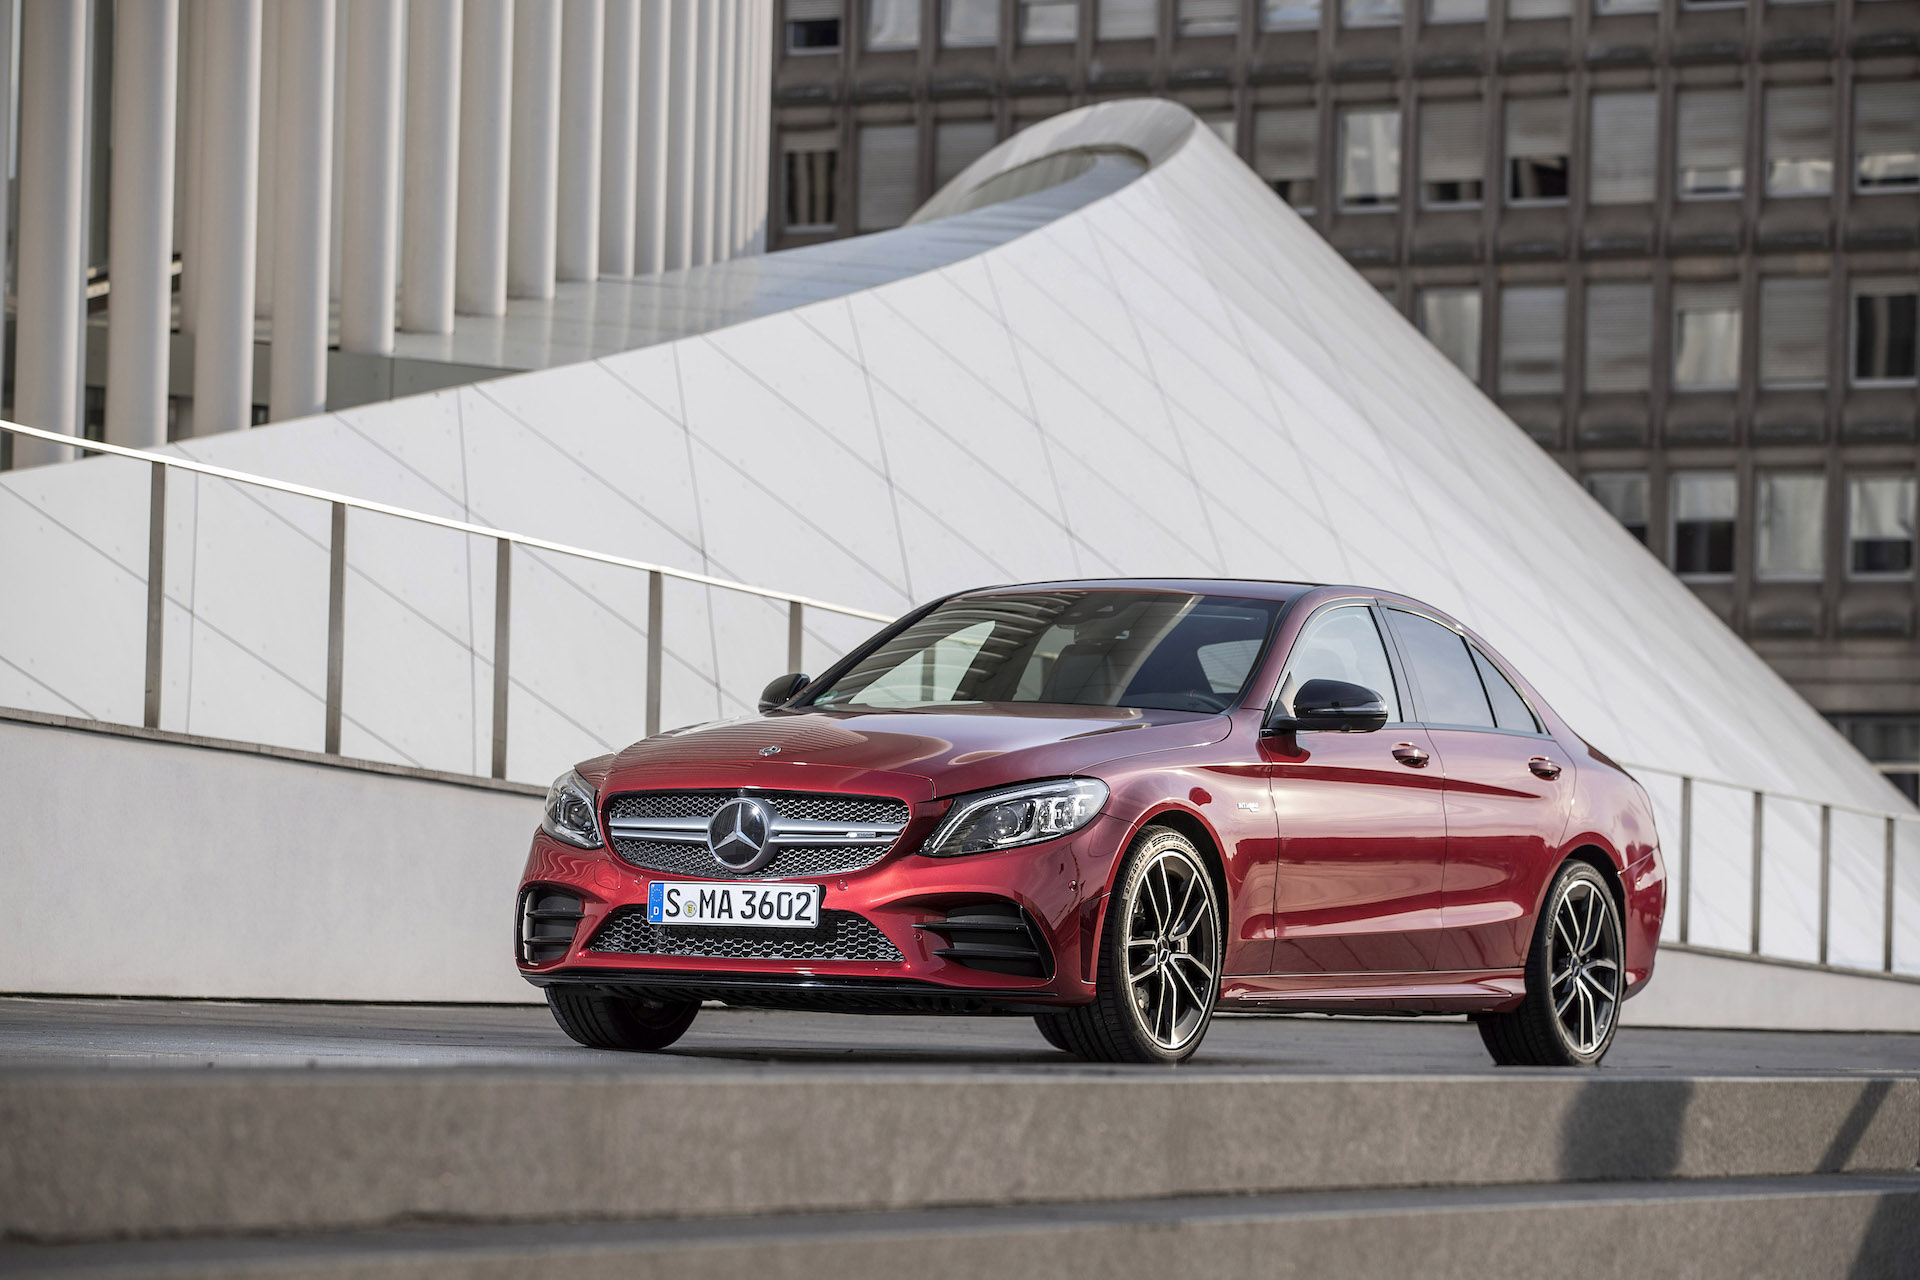 2019 Mercedes Benz C300 And C43 First Drive Review Subtle Upgrades Safety